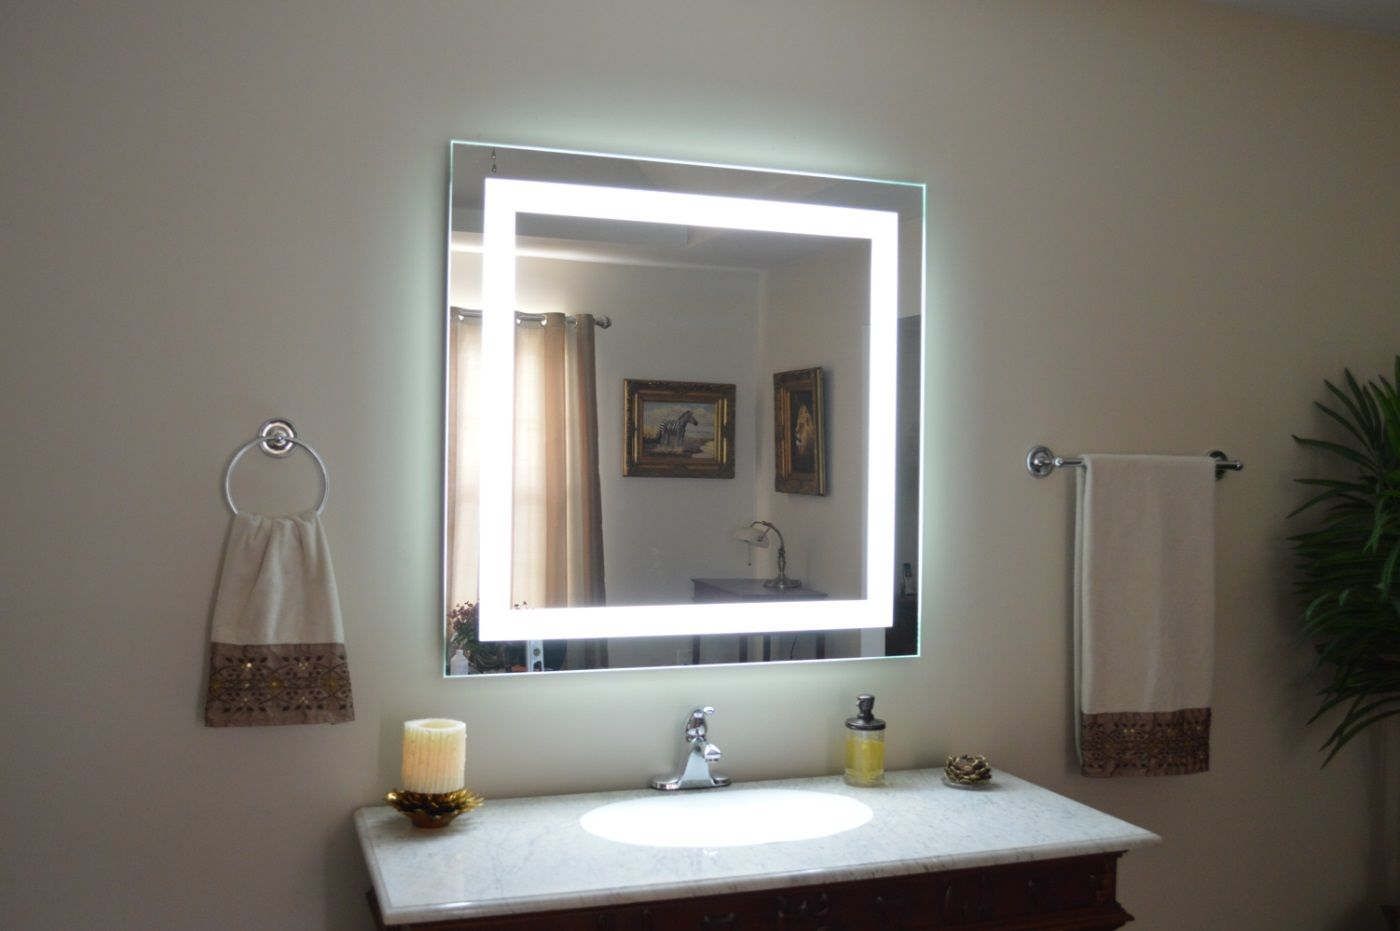 lighted wall makeup mirror photo   4   Lighted Wall Makeup Mirror Warisan  Lighting   Lighted. Lighted Bathroom Mirror Wall Mount   Soul Speak Designs